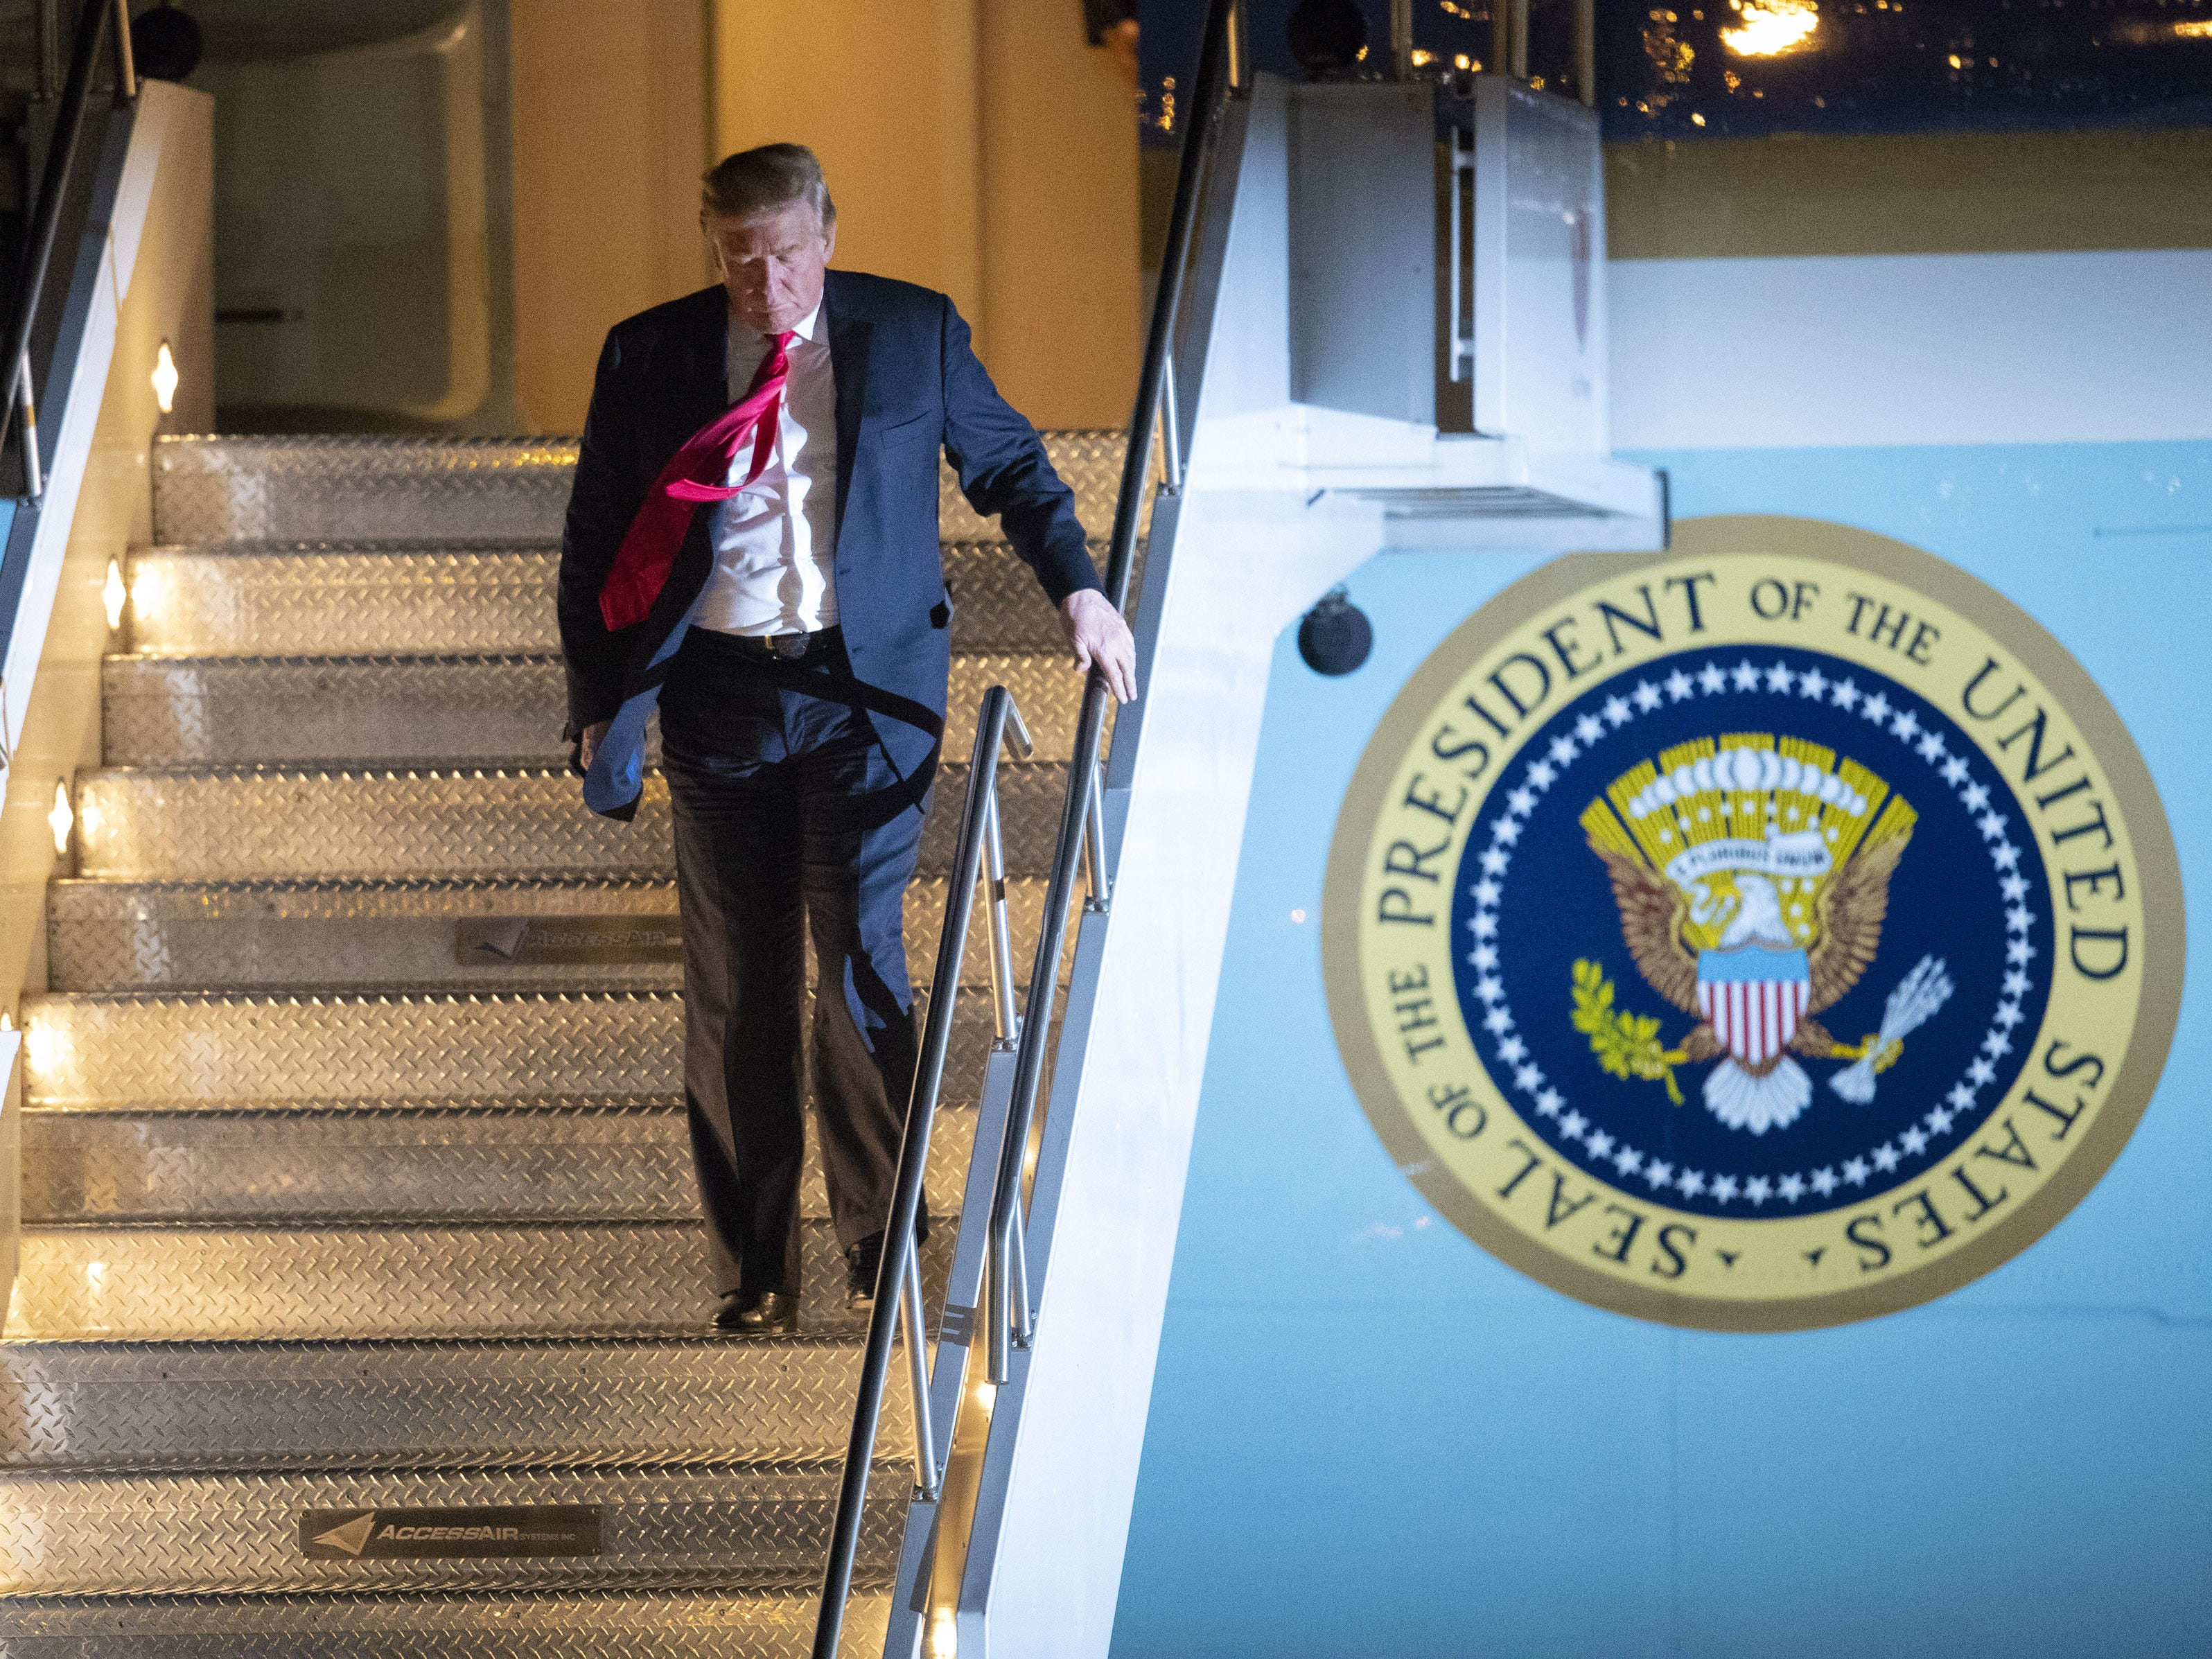 President Trump walks off Air Force One after arriving at Phoenix Sky Harbor Airport Oct. 18, 2018. The president is in the Phoenix area for events on Friday including a rally in Mesa for Republican senate candidate Martha McSally.